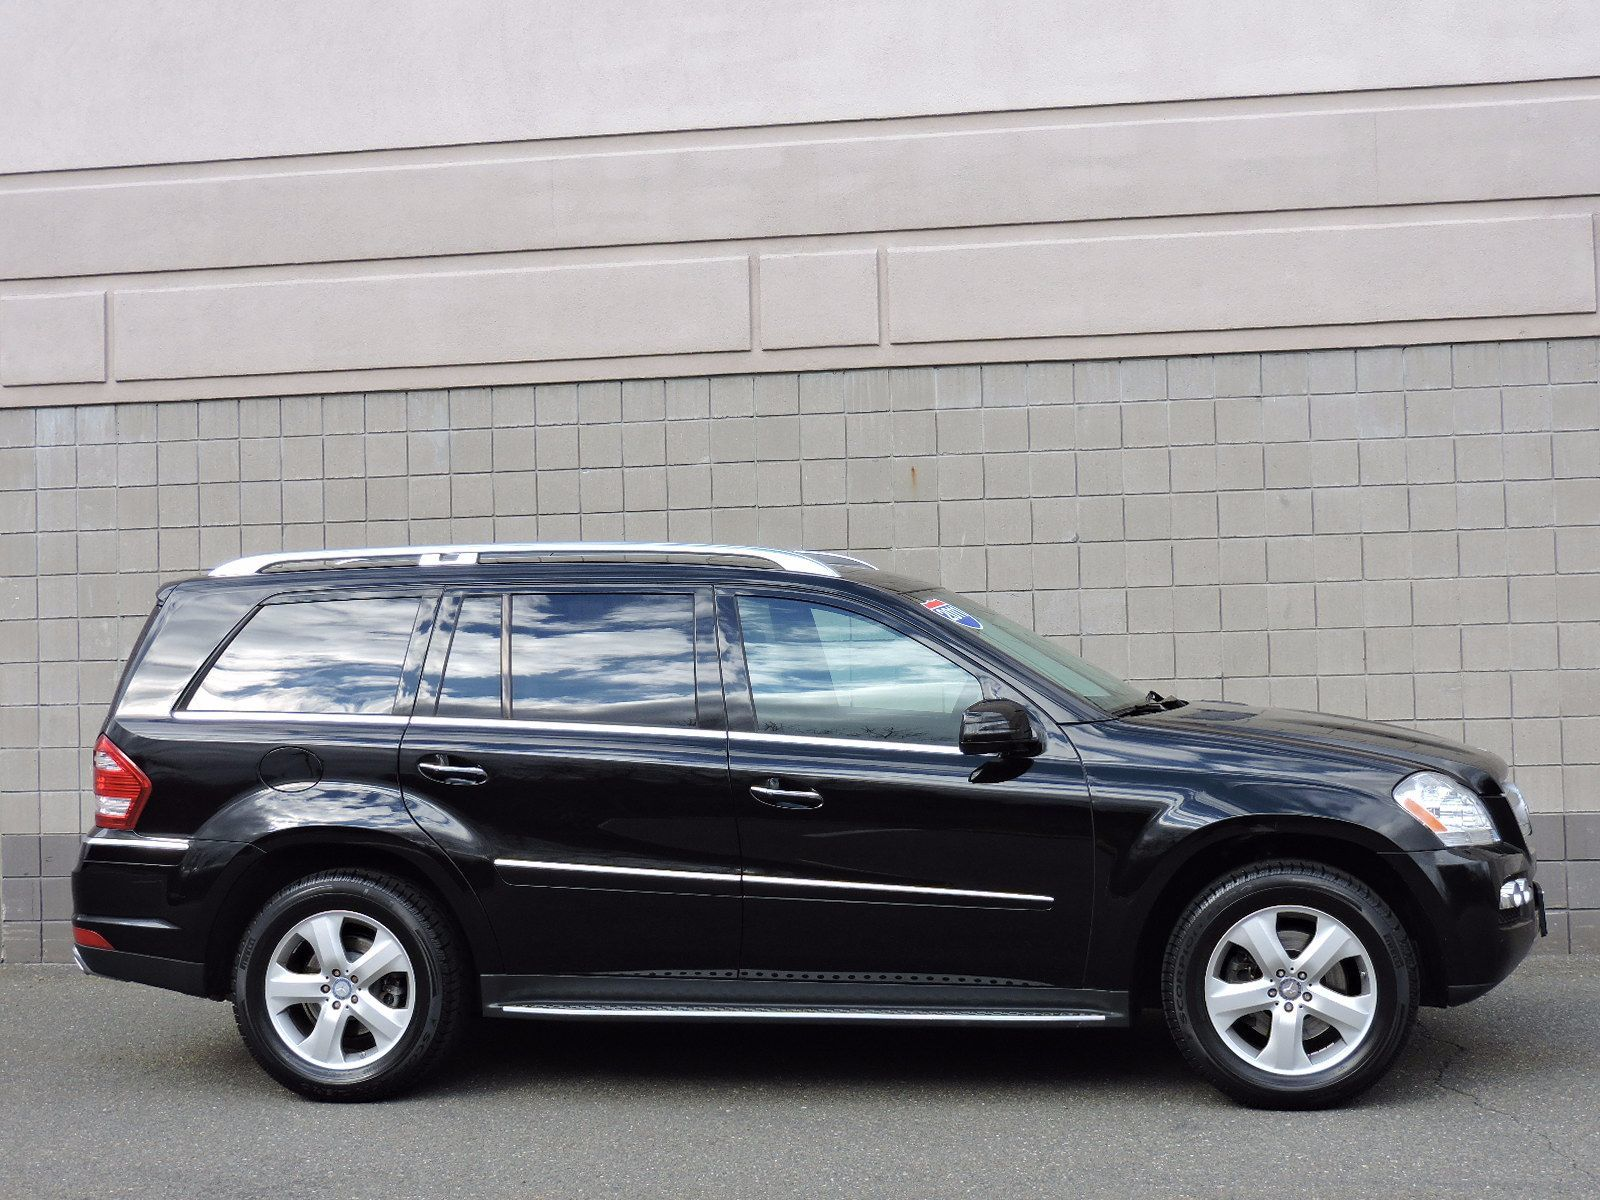 Used 2011 mercedes benz gl450 at saugus auto mall for Used mercedes benz gl450 4matic